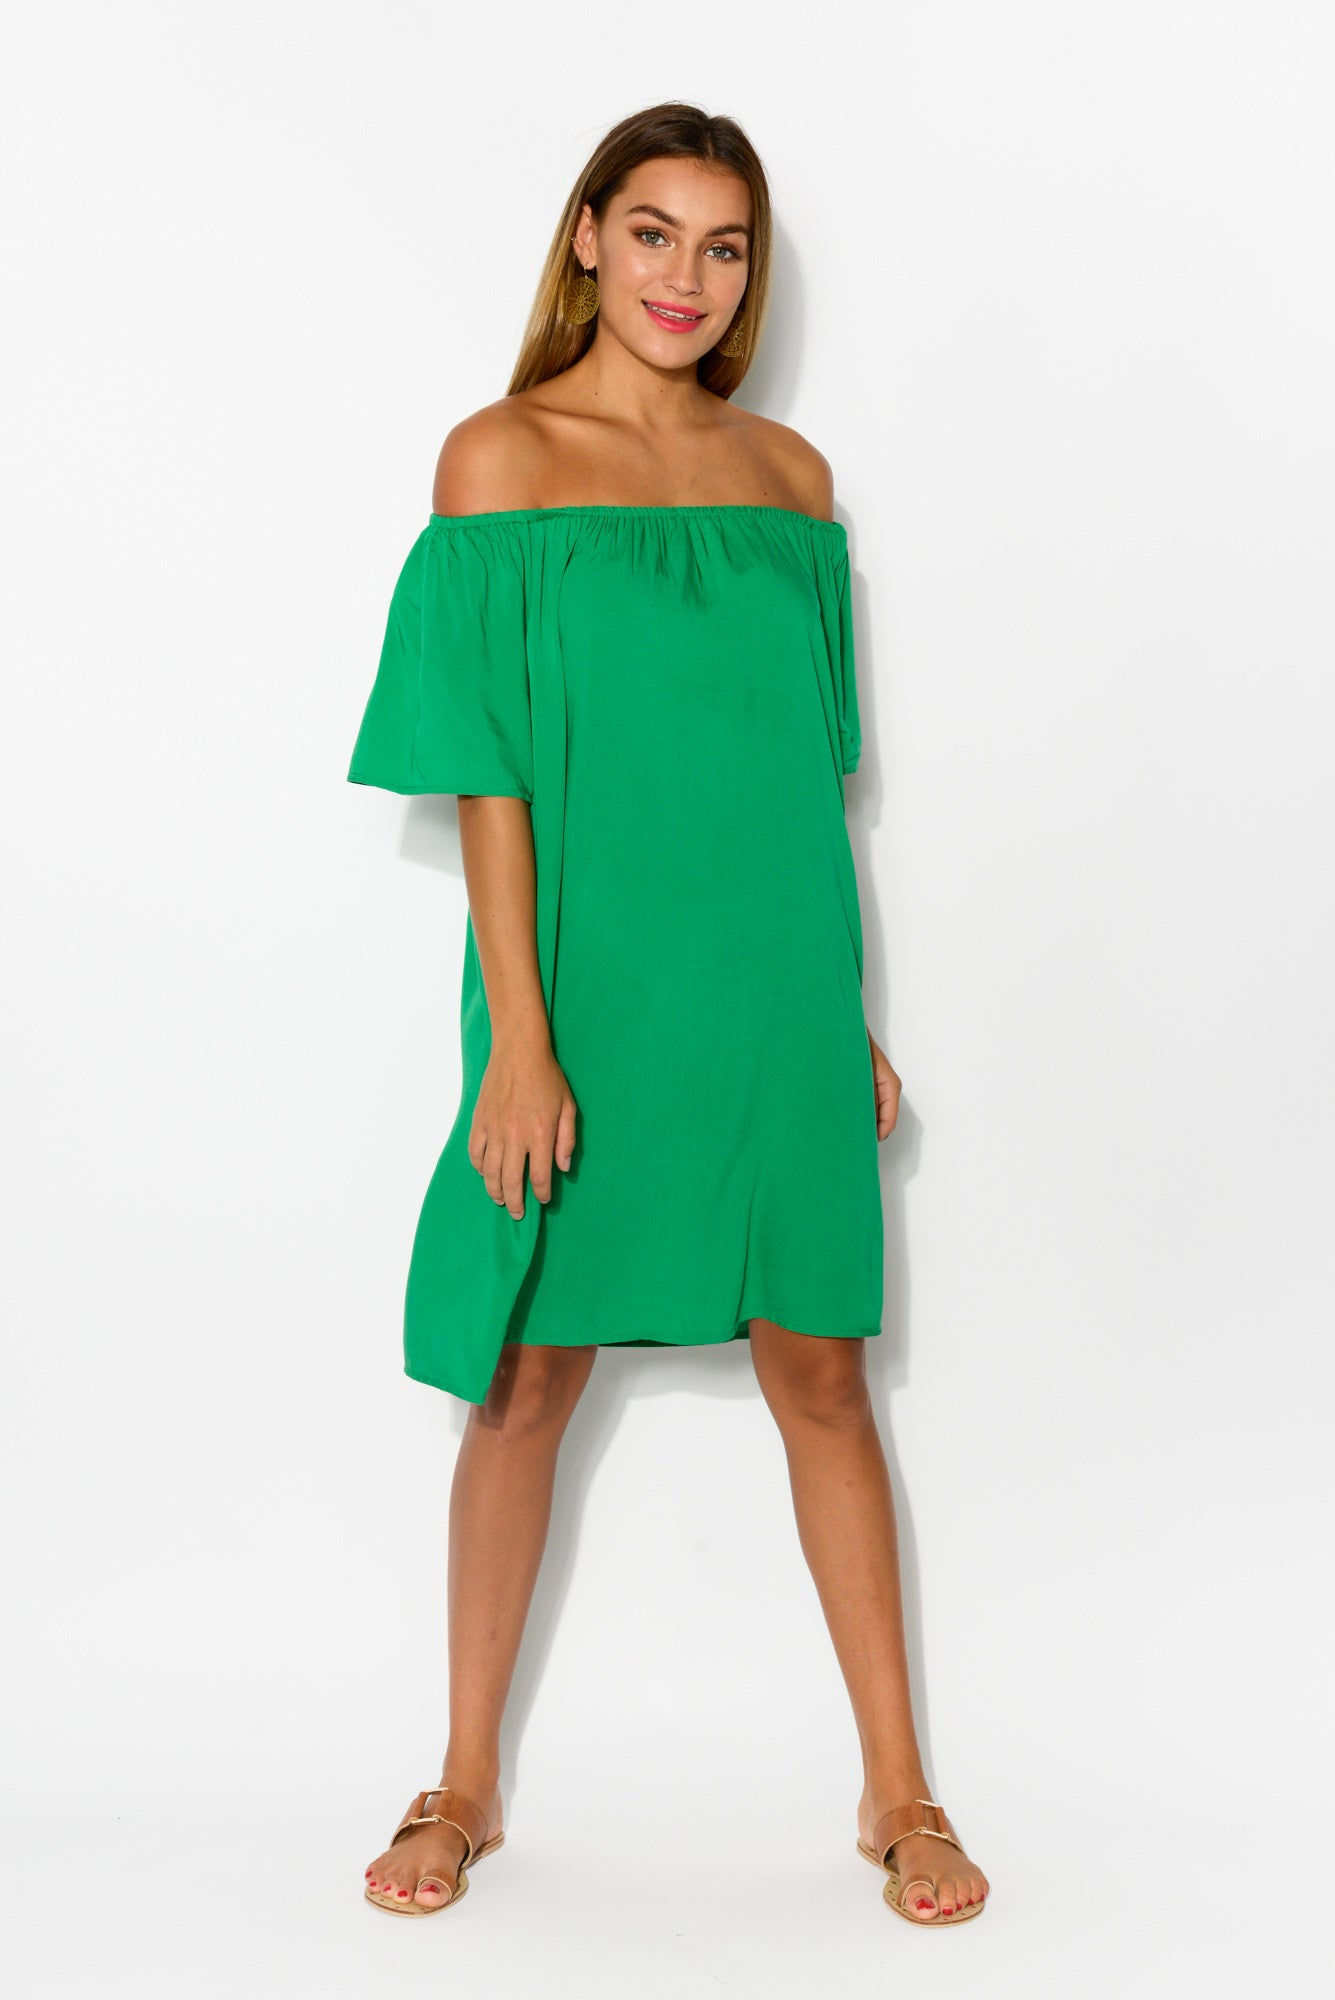 Lauren Emerald Off Shoulder Dress